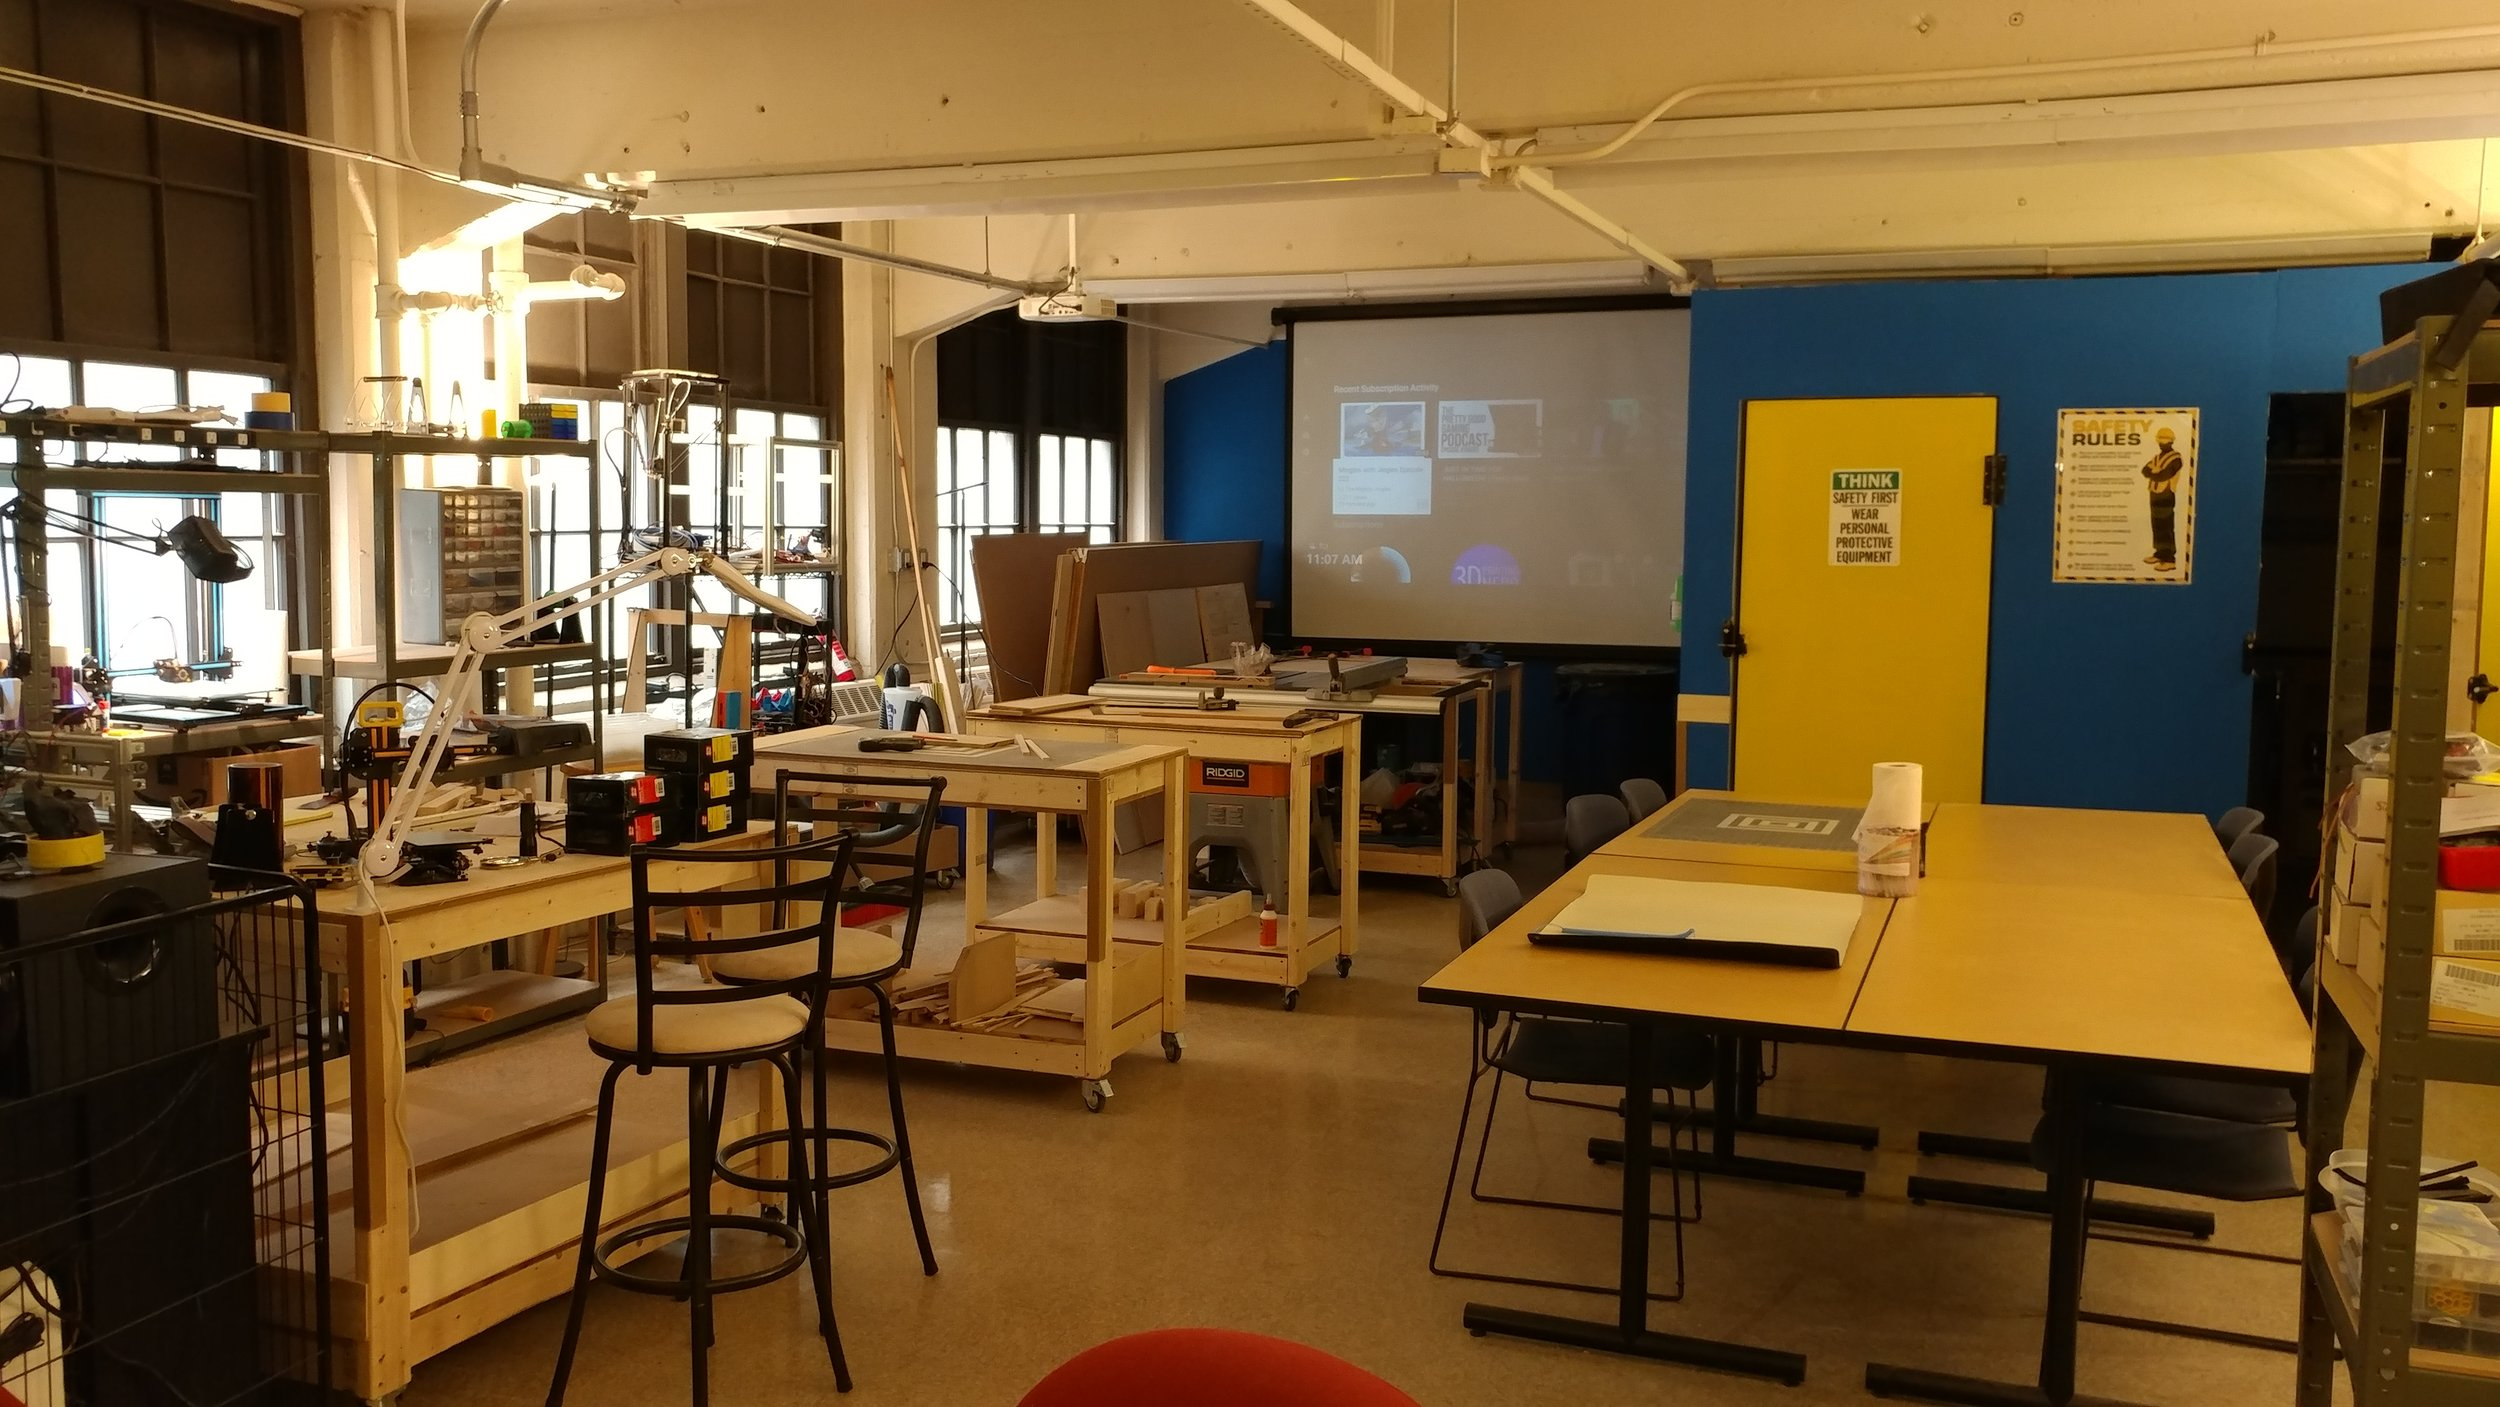 Contact us to be a part of this brand new makerspace in Haverhill, MA. Workbenches, desks, projector for movie night, shared spaces, tools, and more.